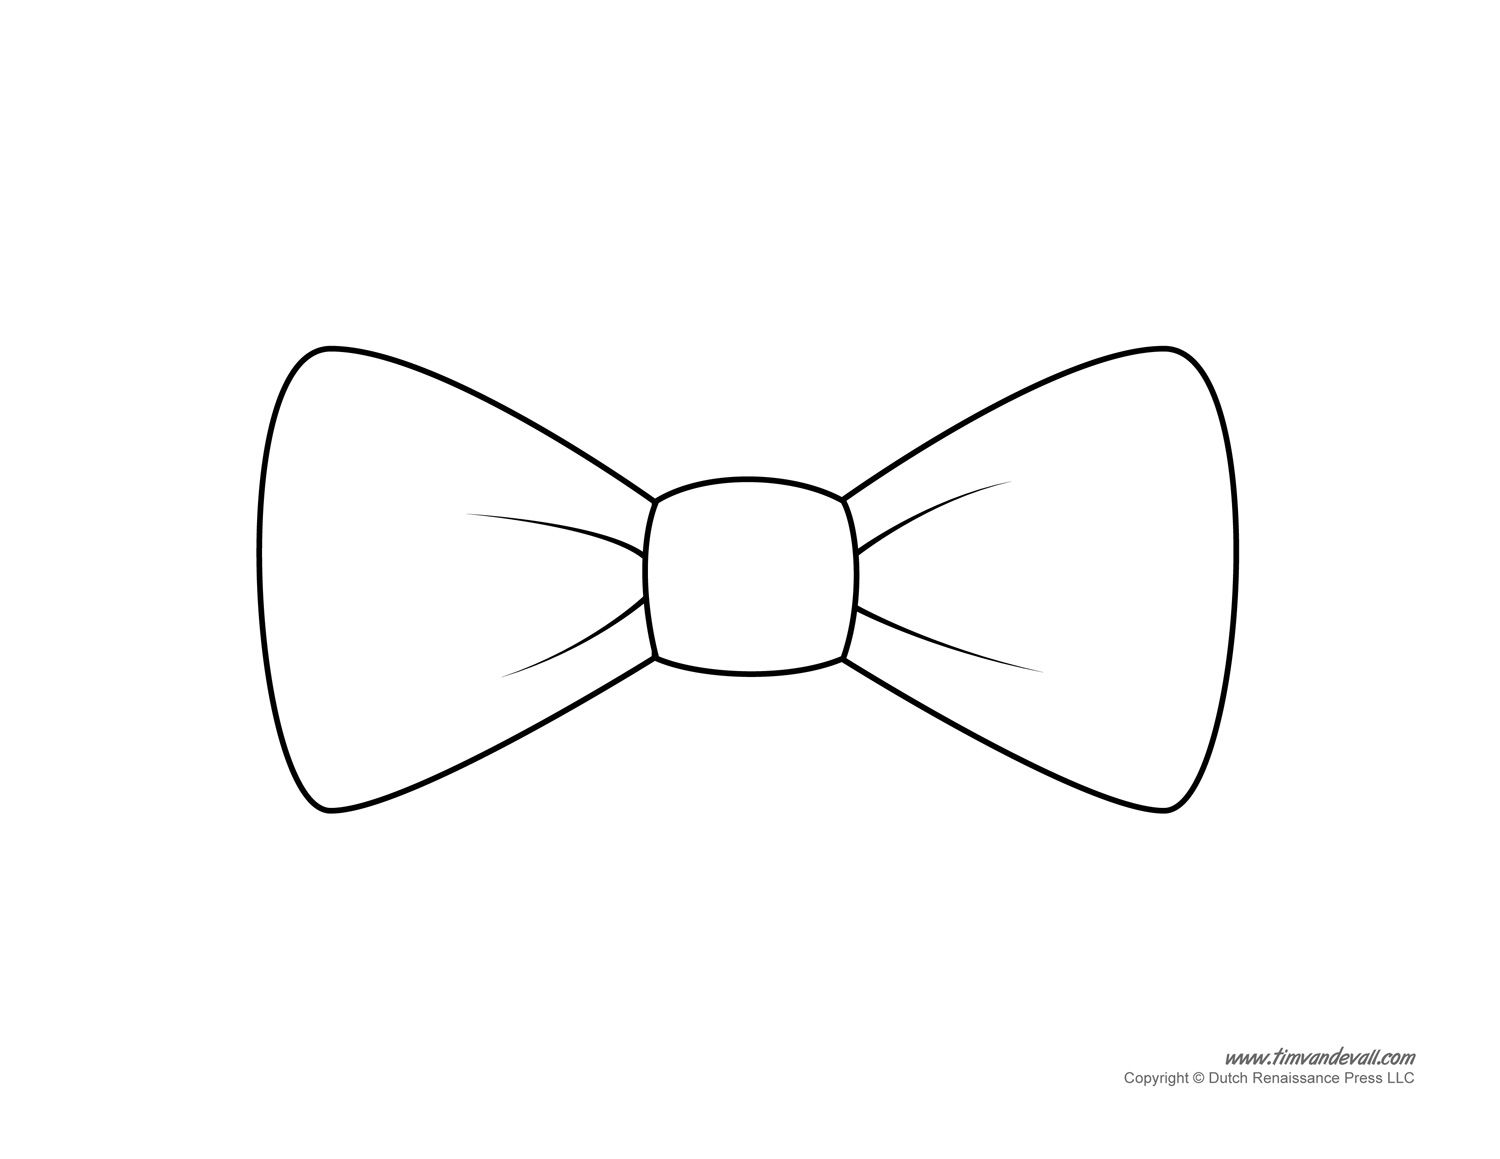 how do you draw a bow how to draw a bow in 5 steps easy drawing tutorial draw you do bow how a